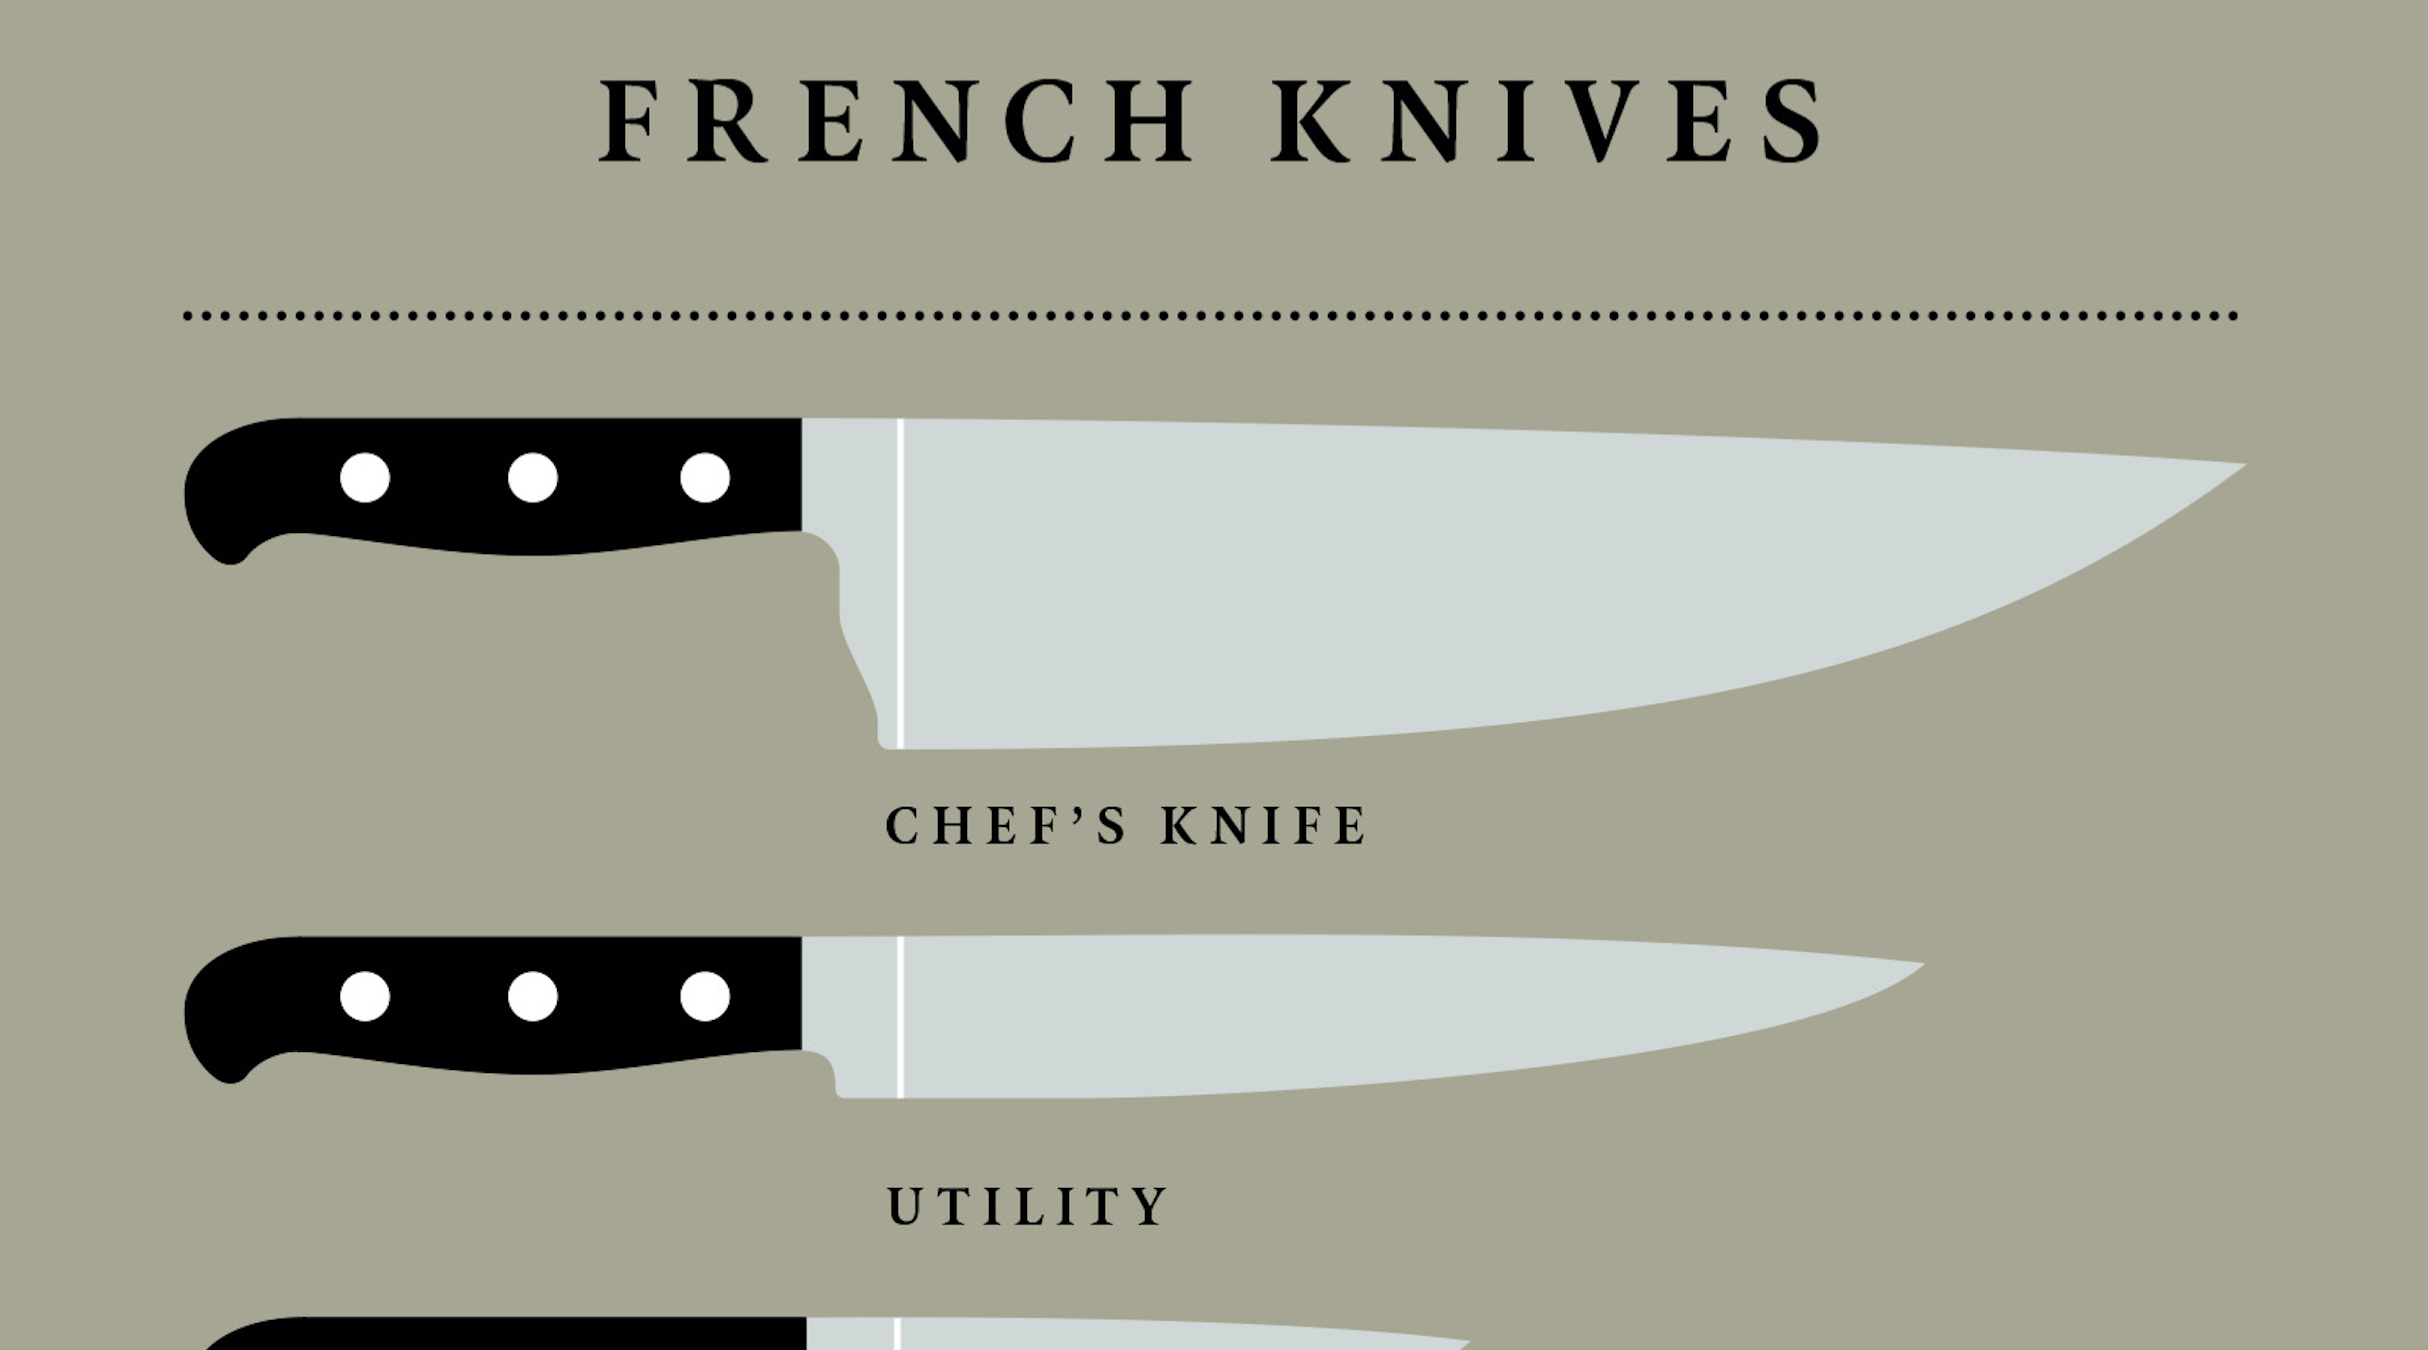 Kind Use Knives Do Chefs What